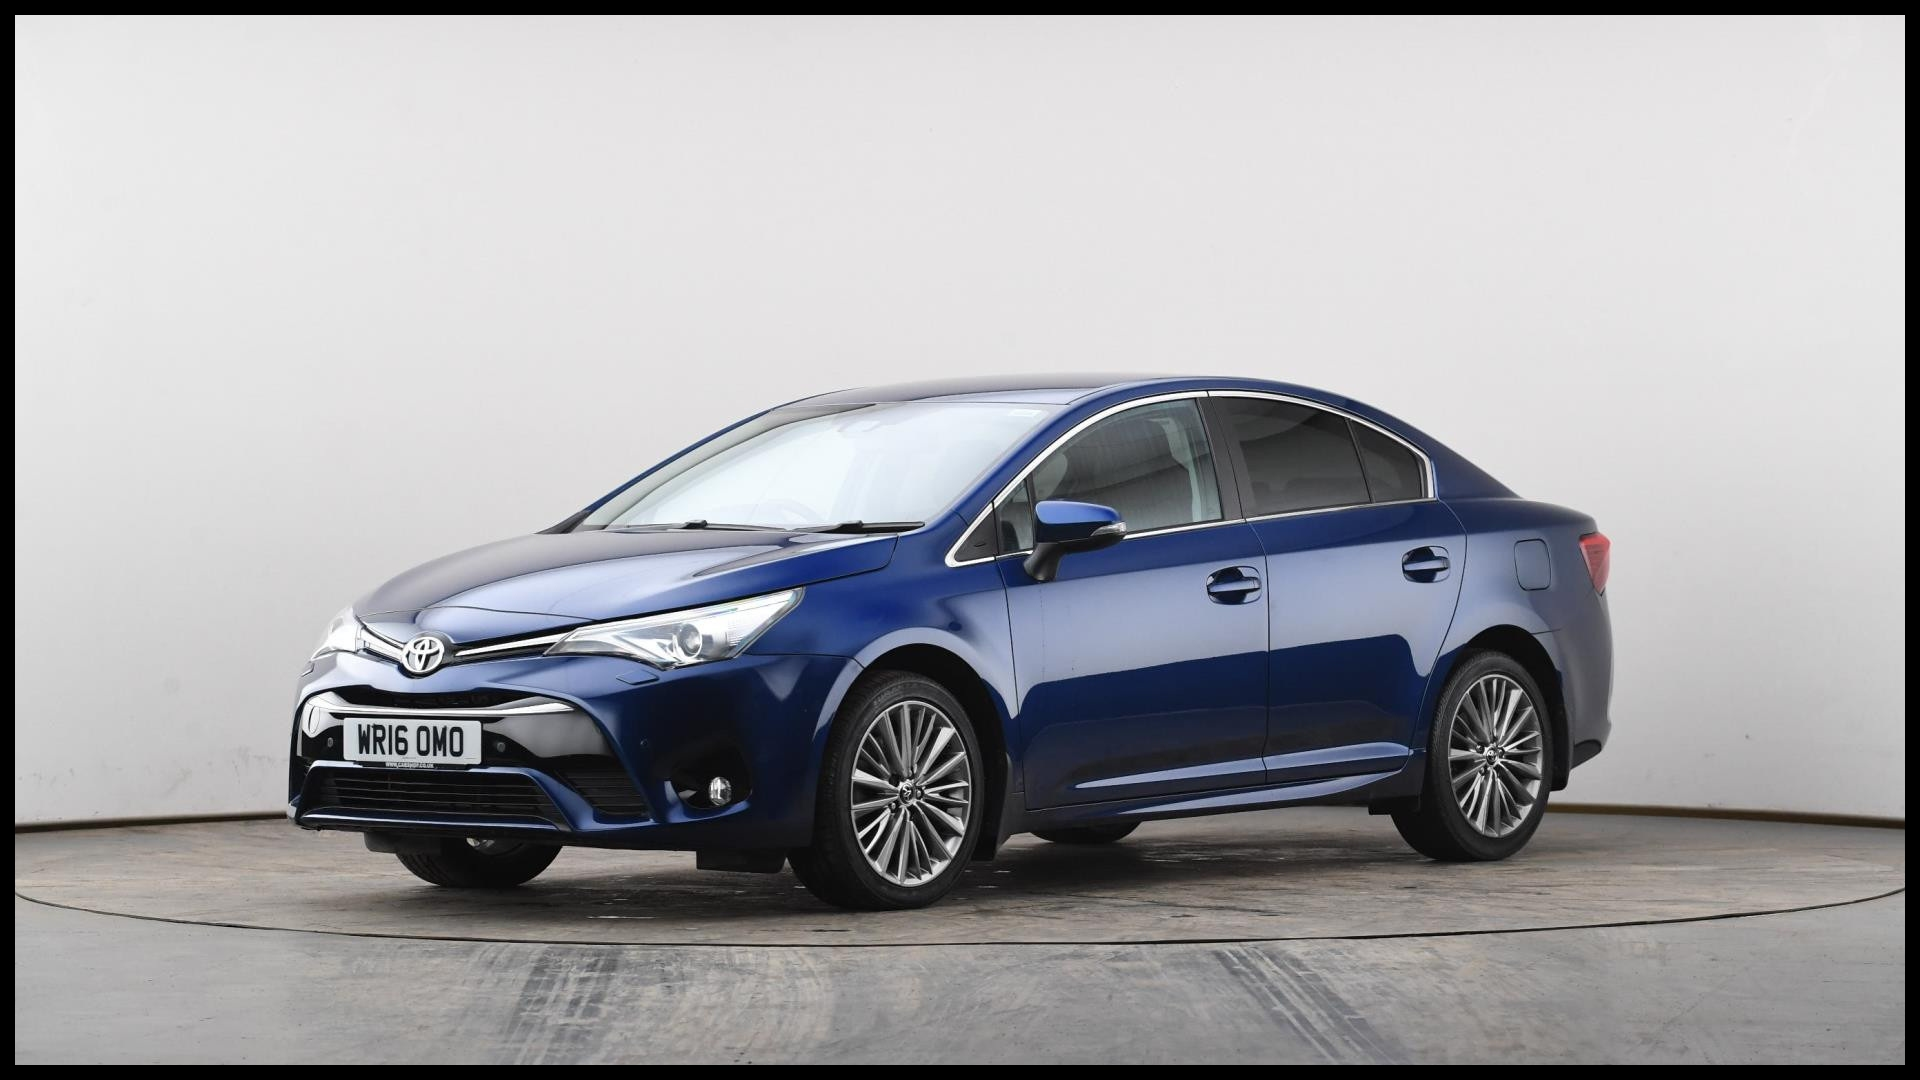 Toyota 2018 Up ing Cars Awesome Hot News toyota 2018 Up Ing Cars Awesome Used toyota Avensis